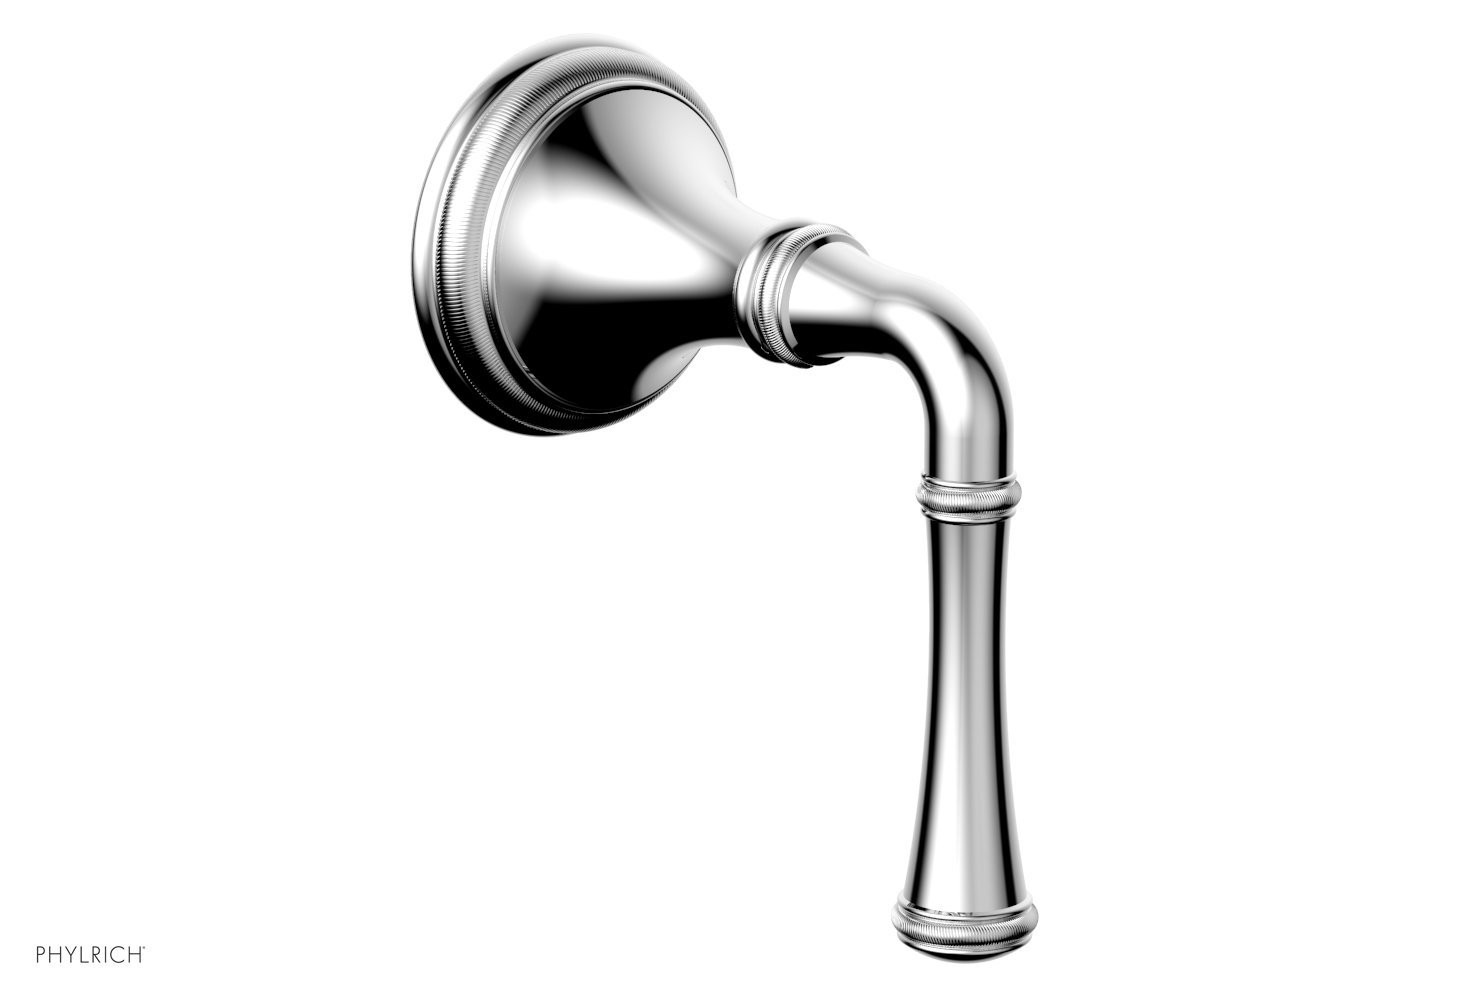 PHYLRICH 208-35 COINED WALL MOUNT LEVER HANDLE VOLUME CONTROL OR DIVERTER TRIM